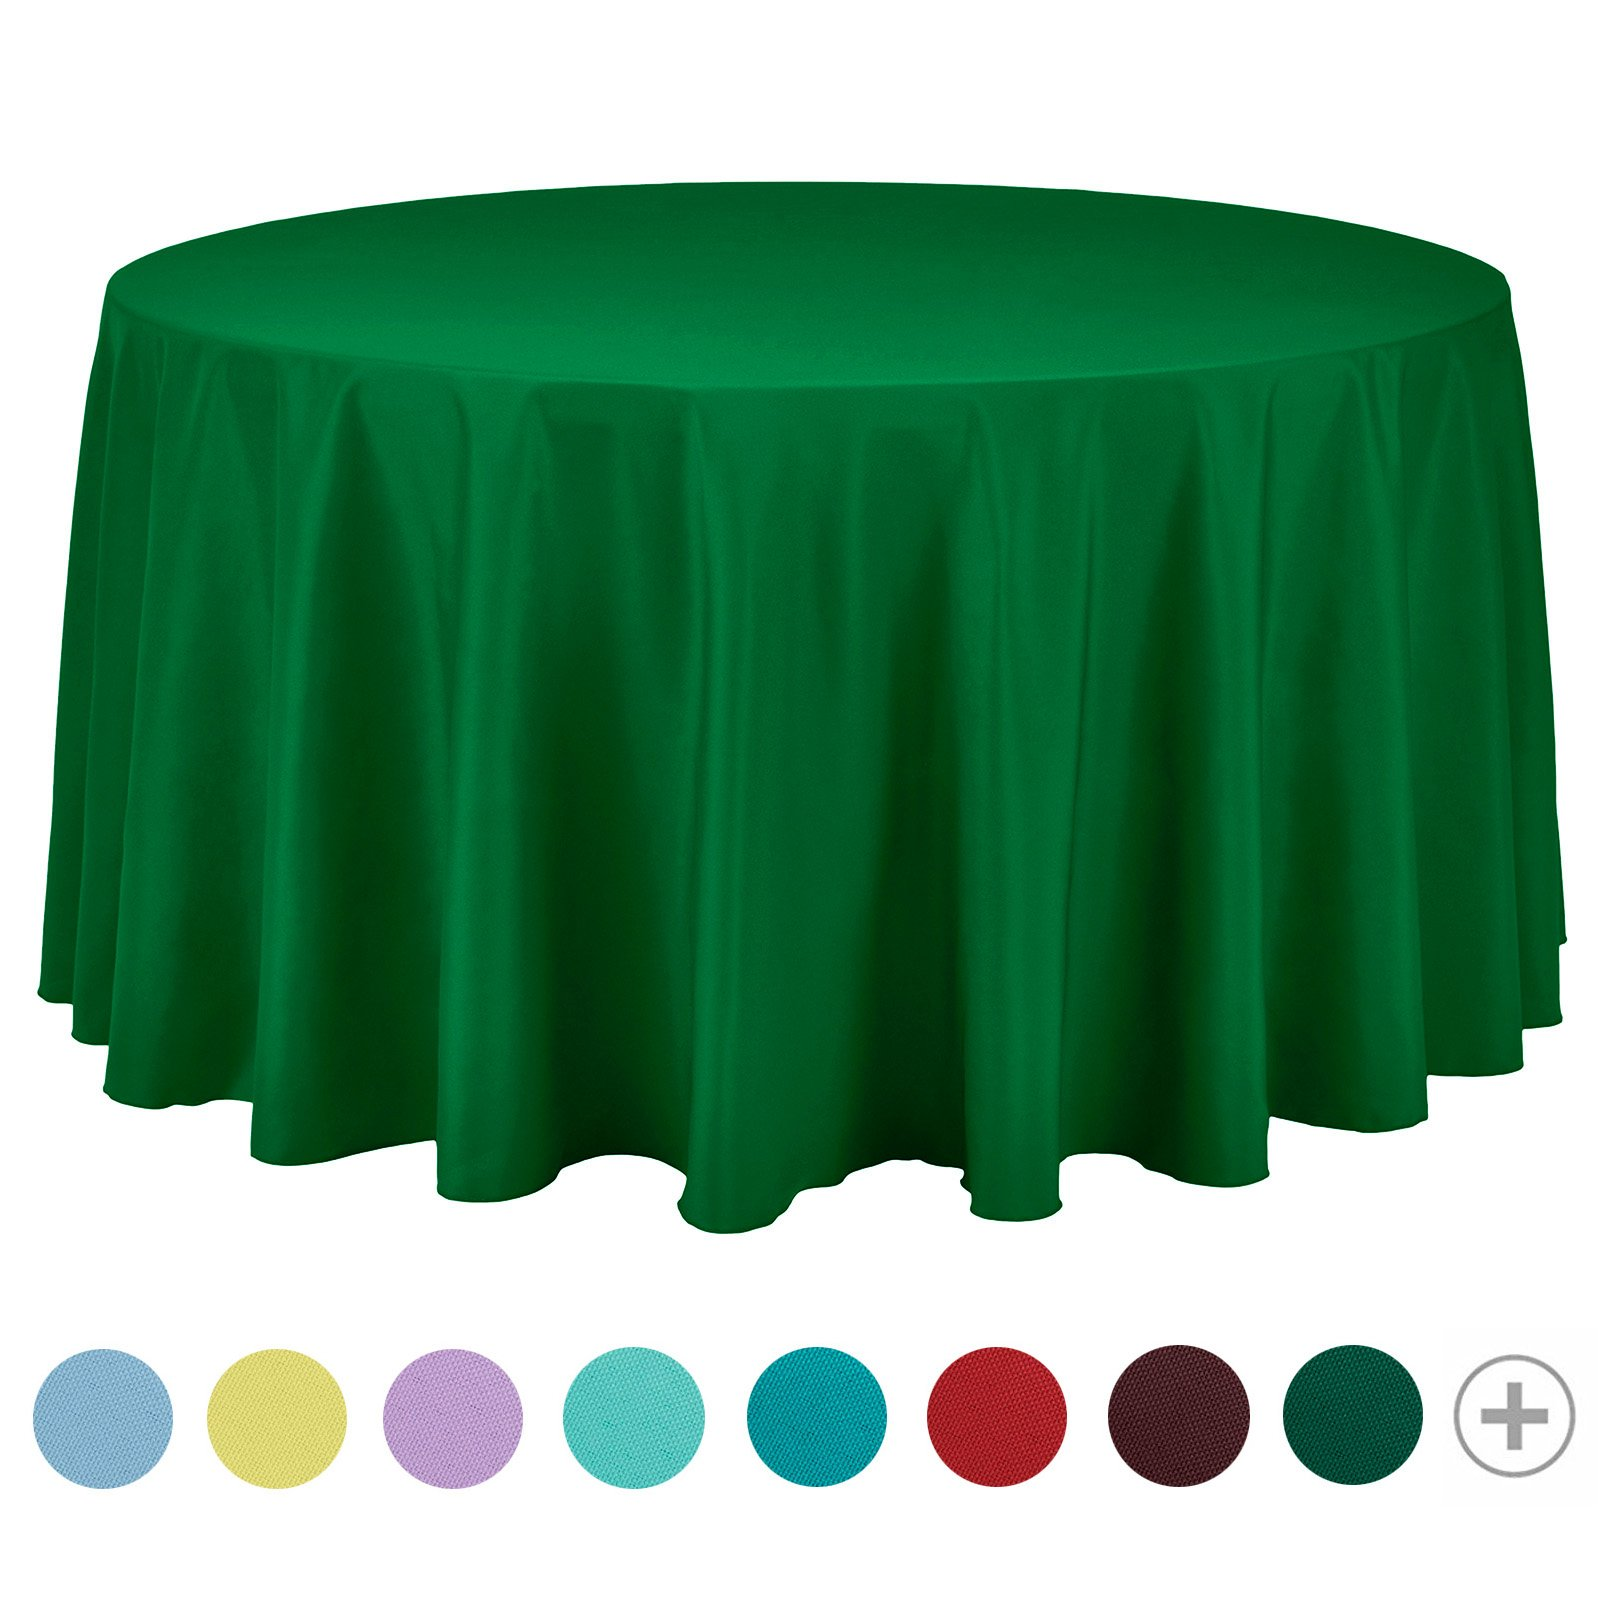 VEEYOO Tablecloth 108 inch Round Solid Polyester for Restaurant Party Bistros Buffet Table Baby Shower Kitchen Accessories, Green